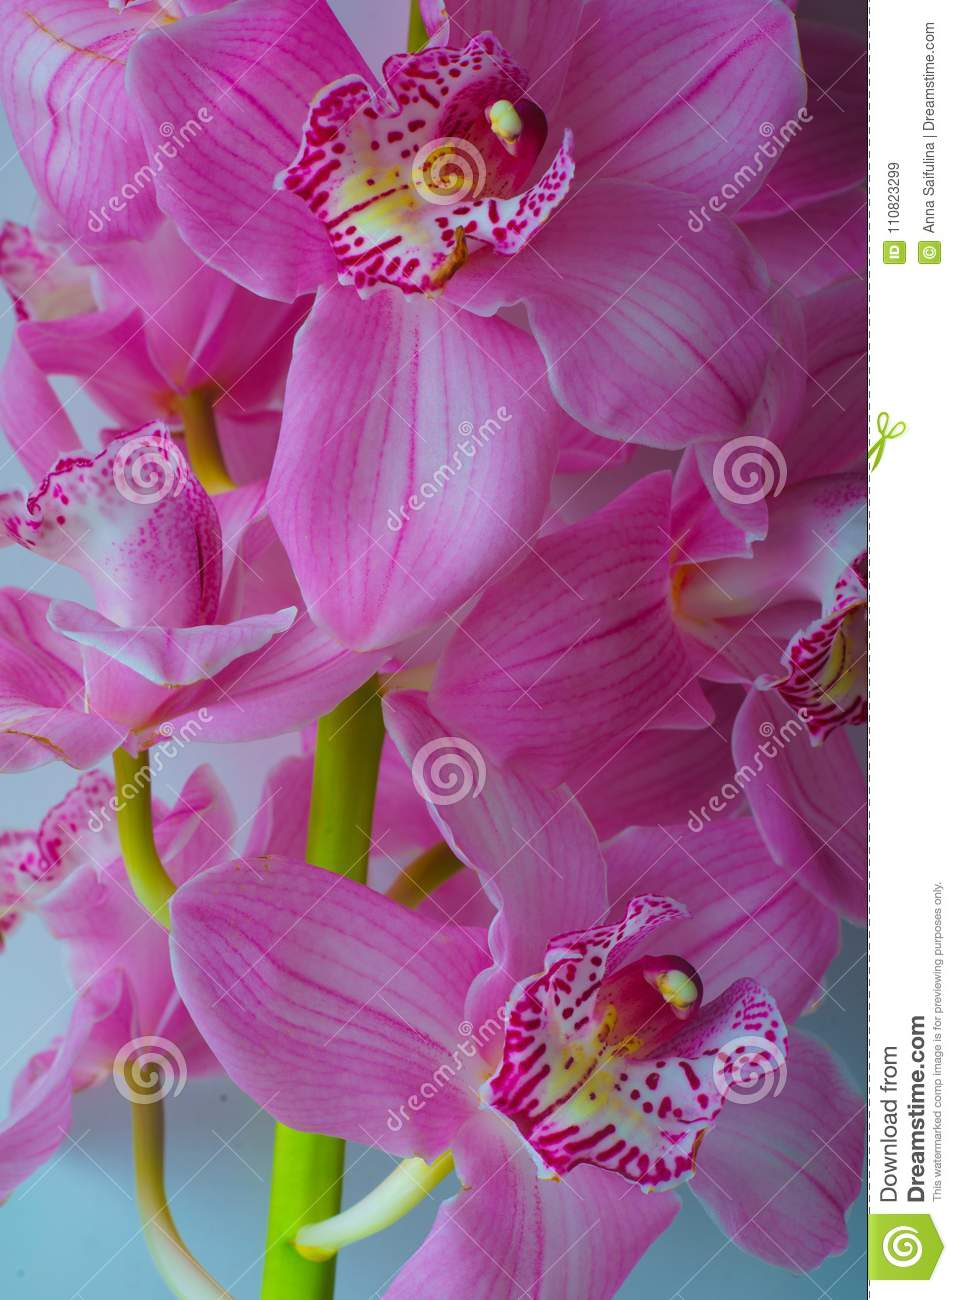 The Orchid Flowers Beautiful Floral Background For Greeting Cards